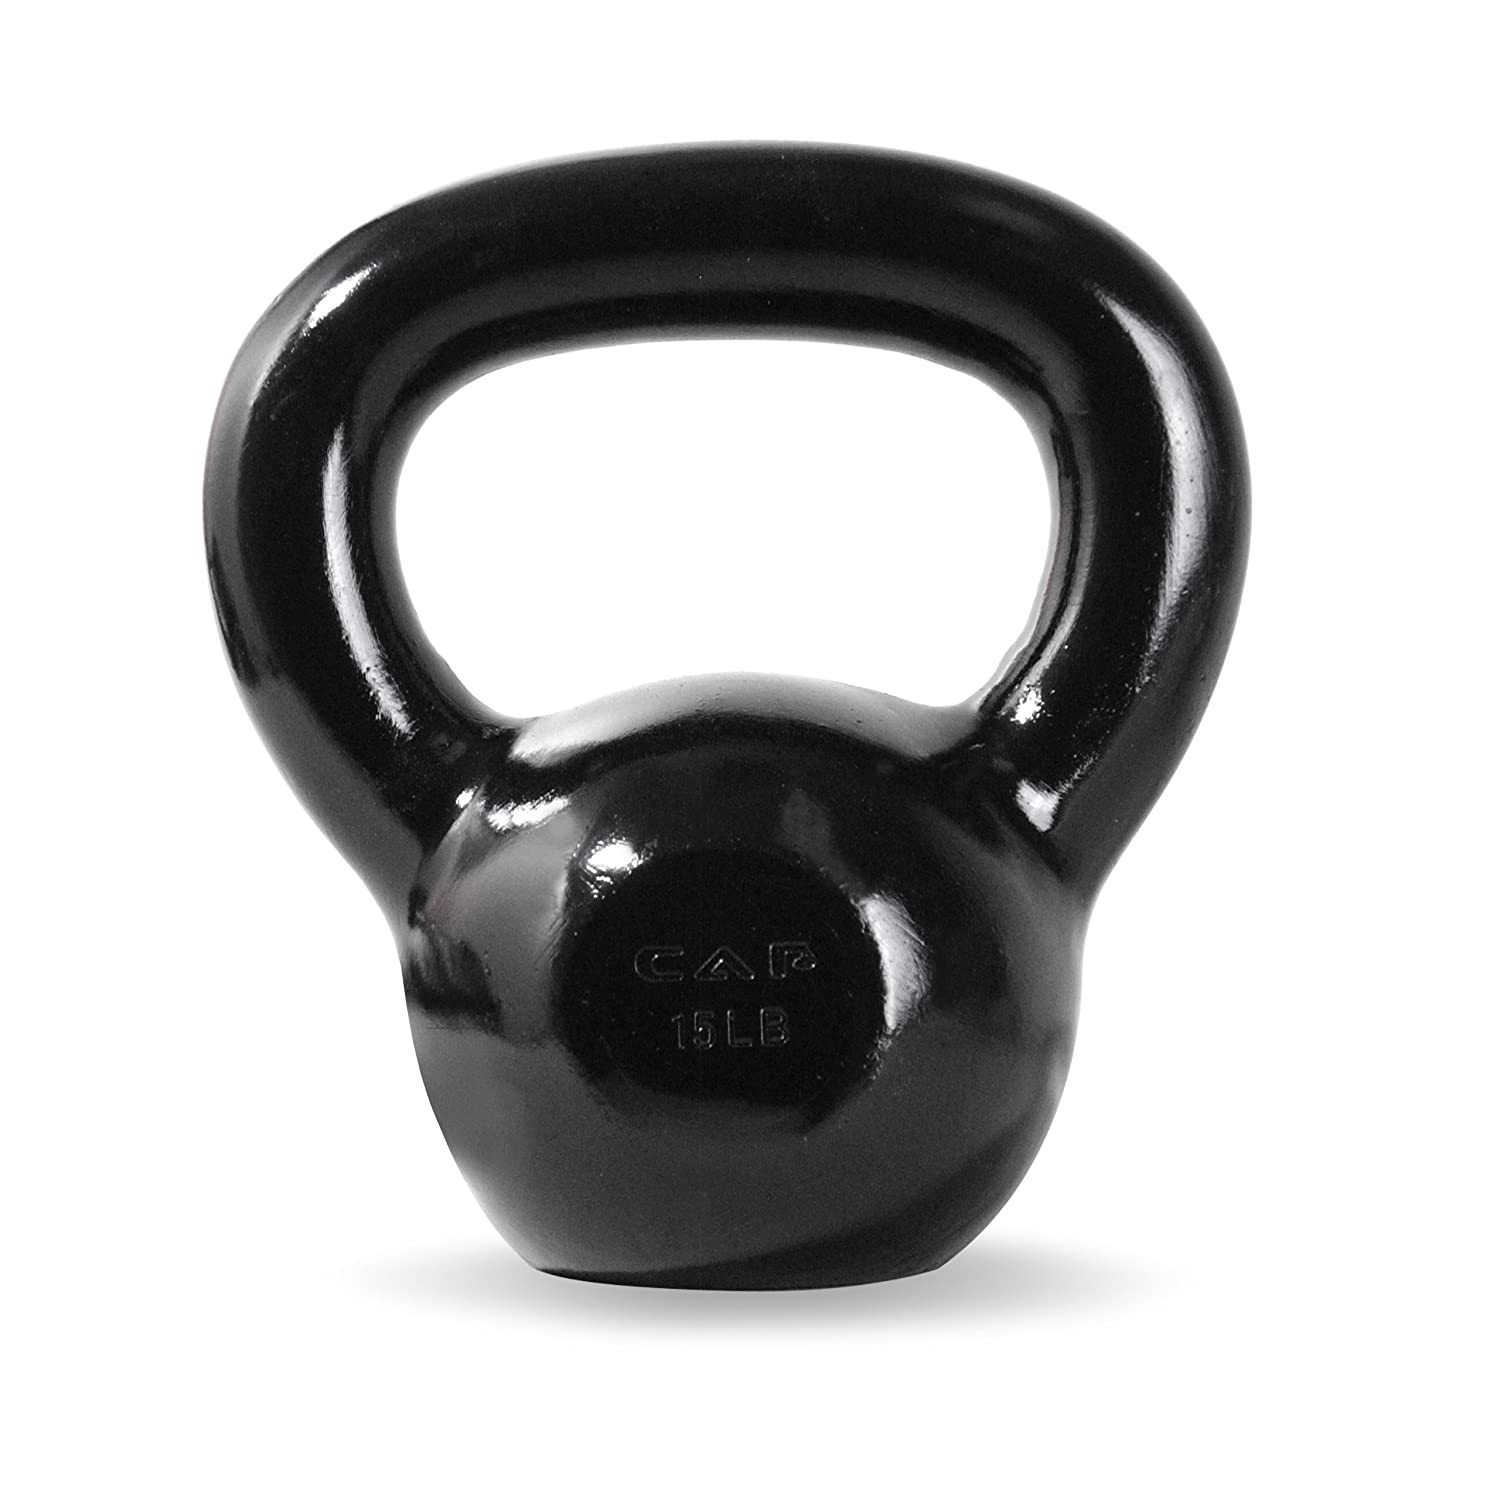 Best Kettlebell Weight Buying Guide